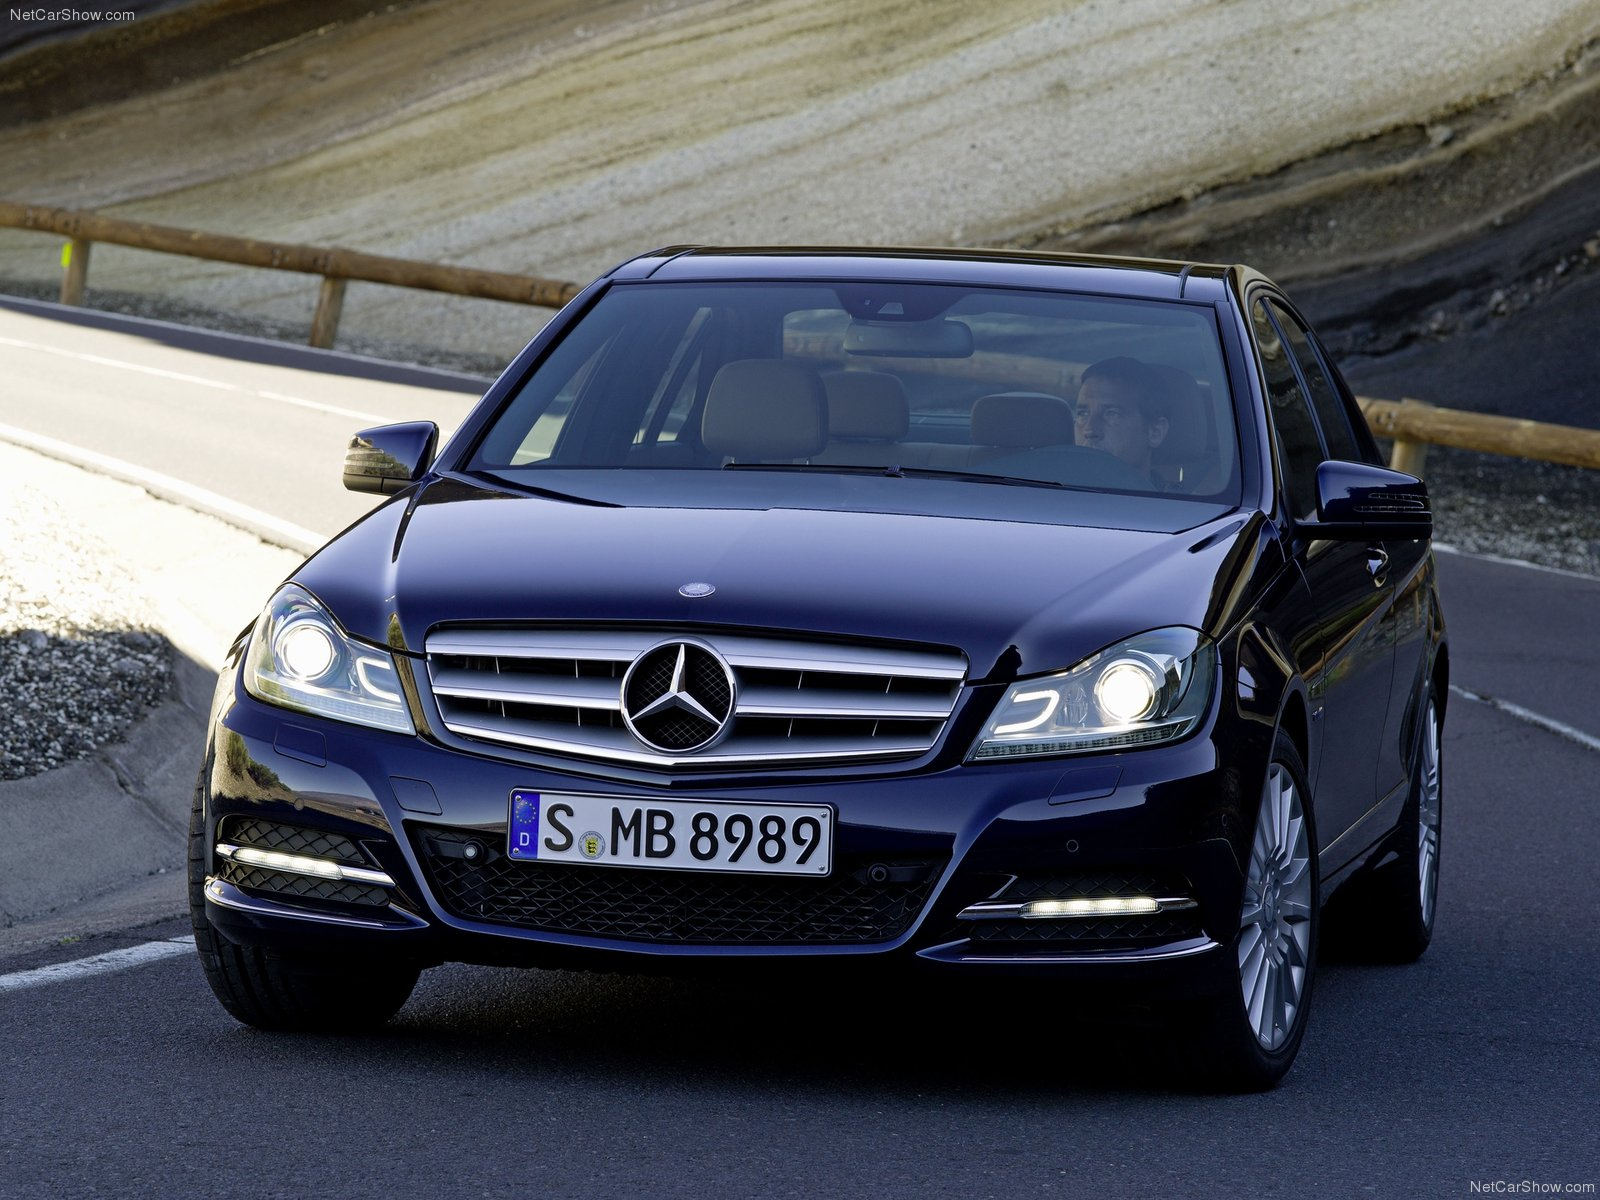 mercedes benz c class w204 photos photogallery with 47